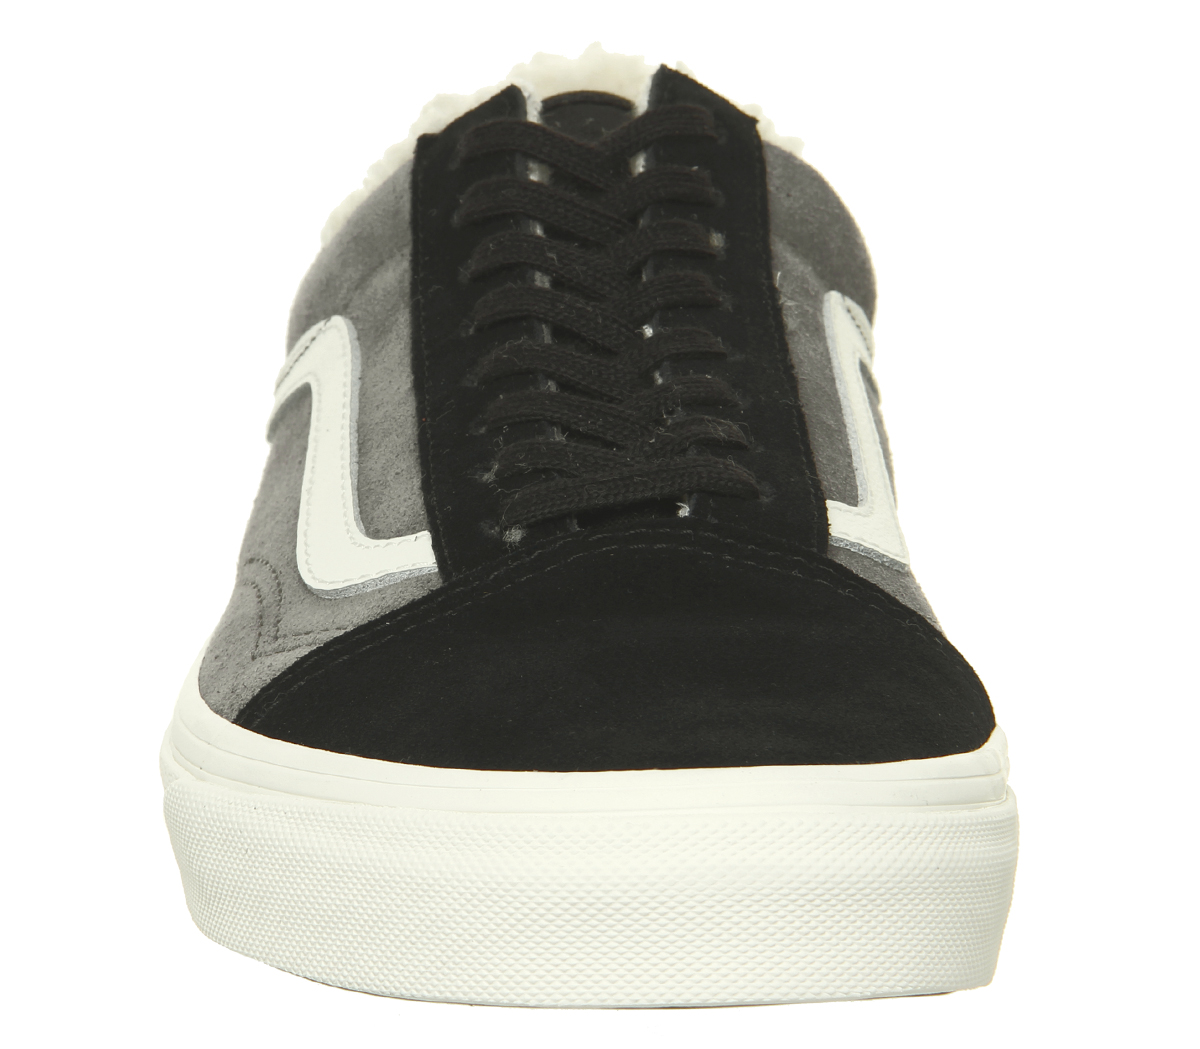 f463e94258a Mens Vans Old Skool Trainers Black Pewter Sherpa Trainers Shoes